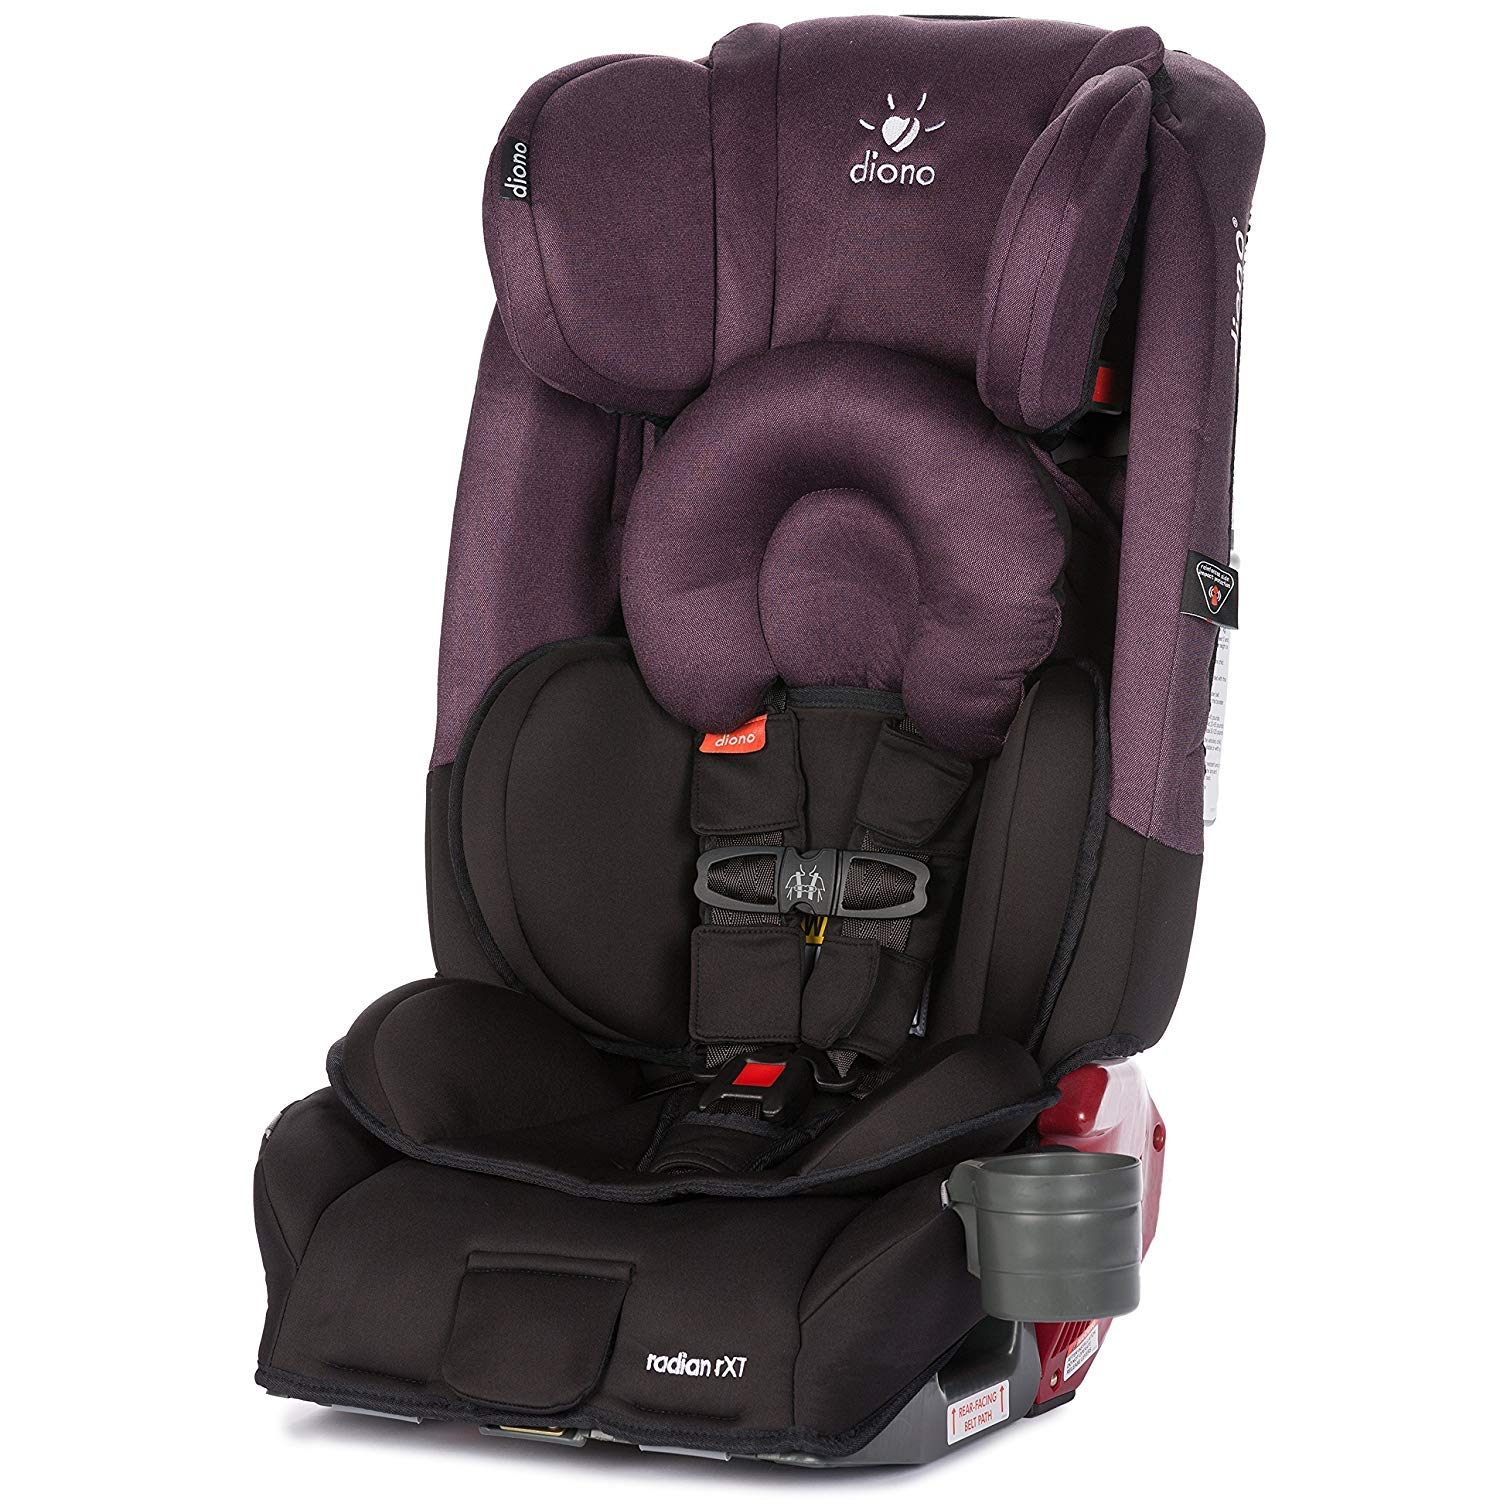 Diono Radian 3RXT All-in-One Convertible Car Seat Black Extended Rear-Facing 5-45 Pounds The Original 3 Across Forward-Facing to 65 Pounds Booster to 120 Pounds